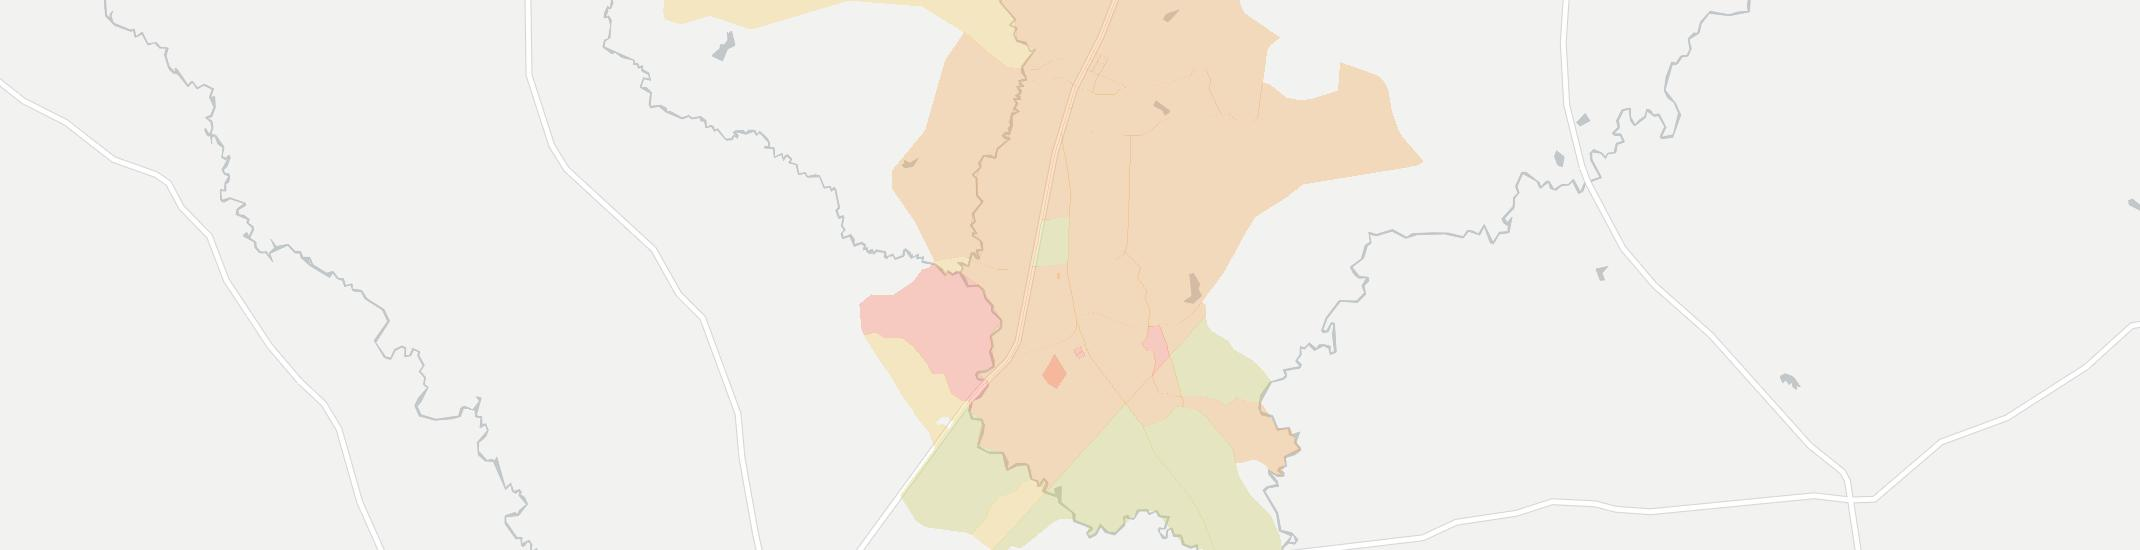 Ingold Internet Competition Map. Click for interactive map.